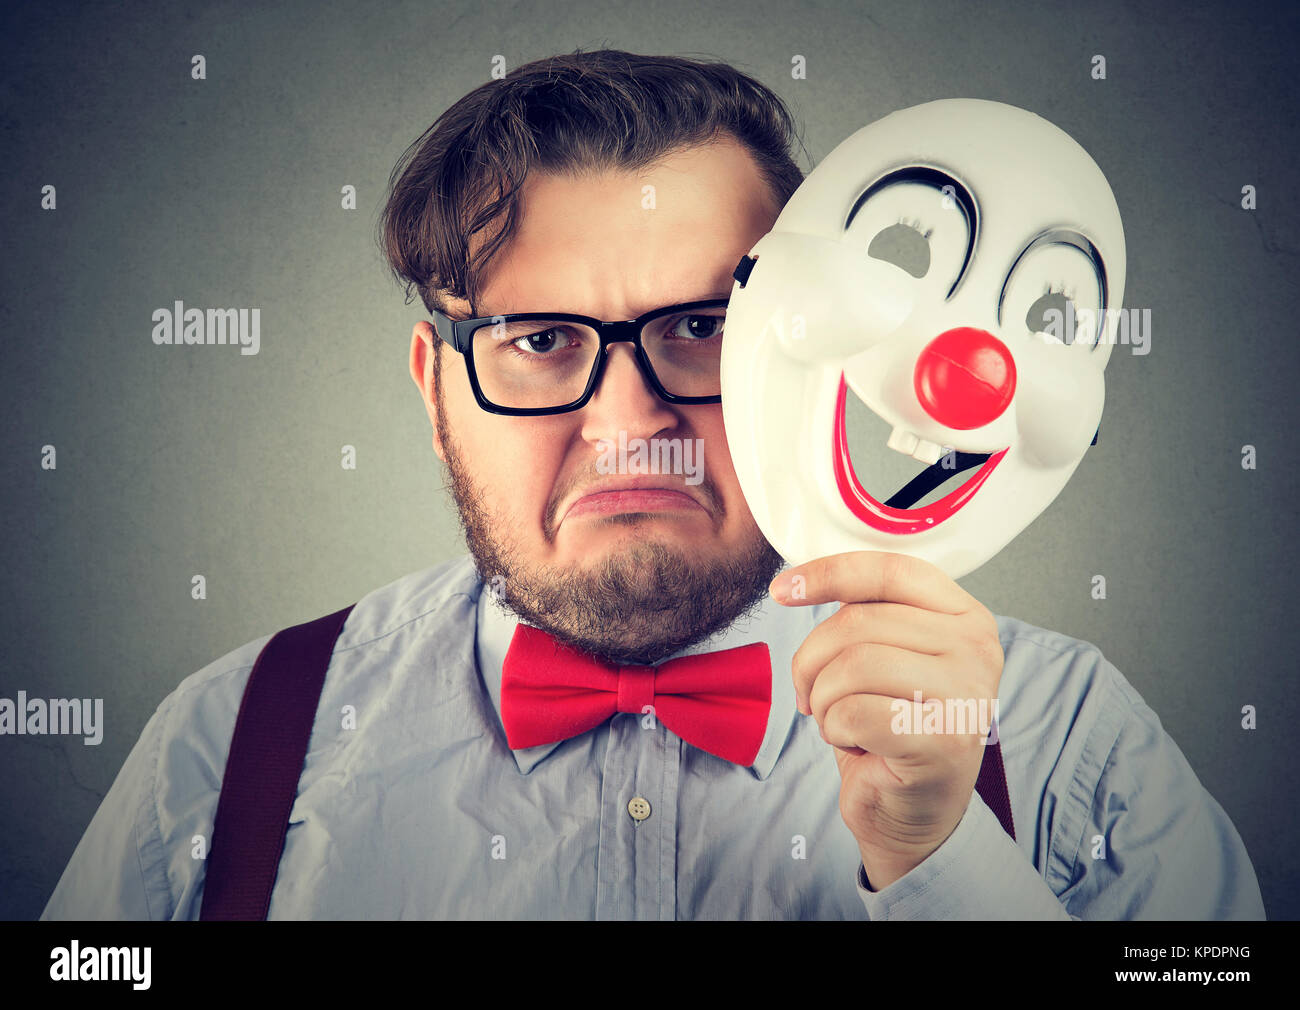 Young upset man frowning while looking at camera and holding happy clown mask. - Stock Image